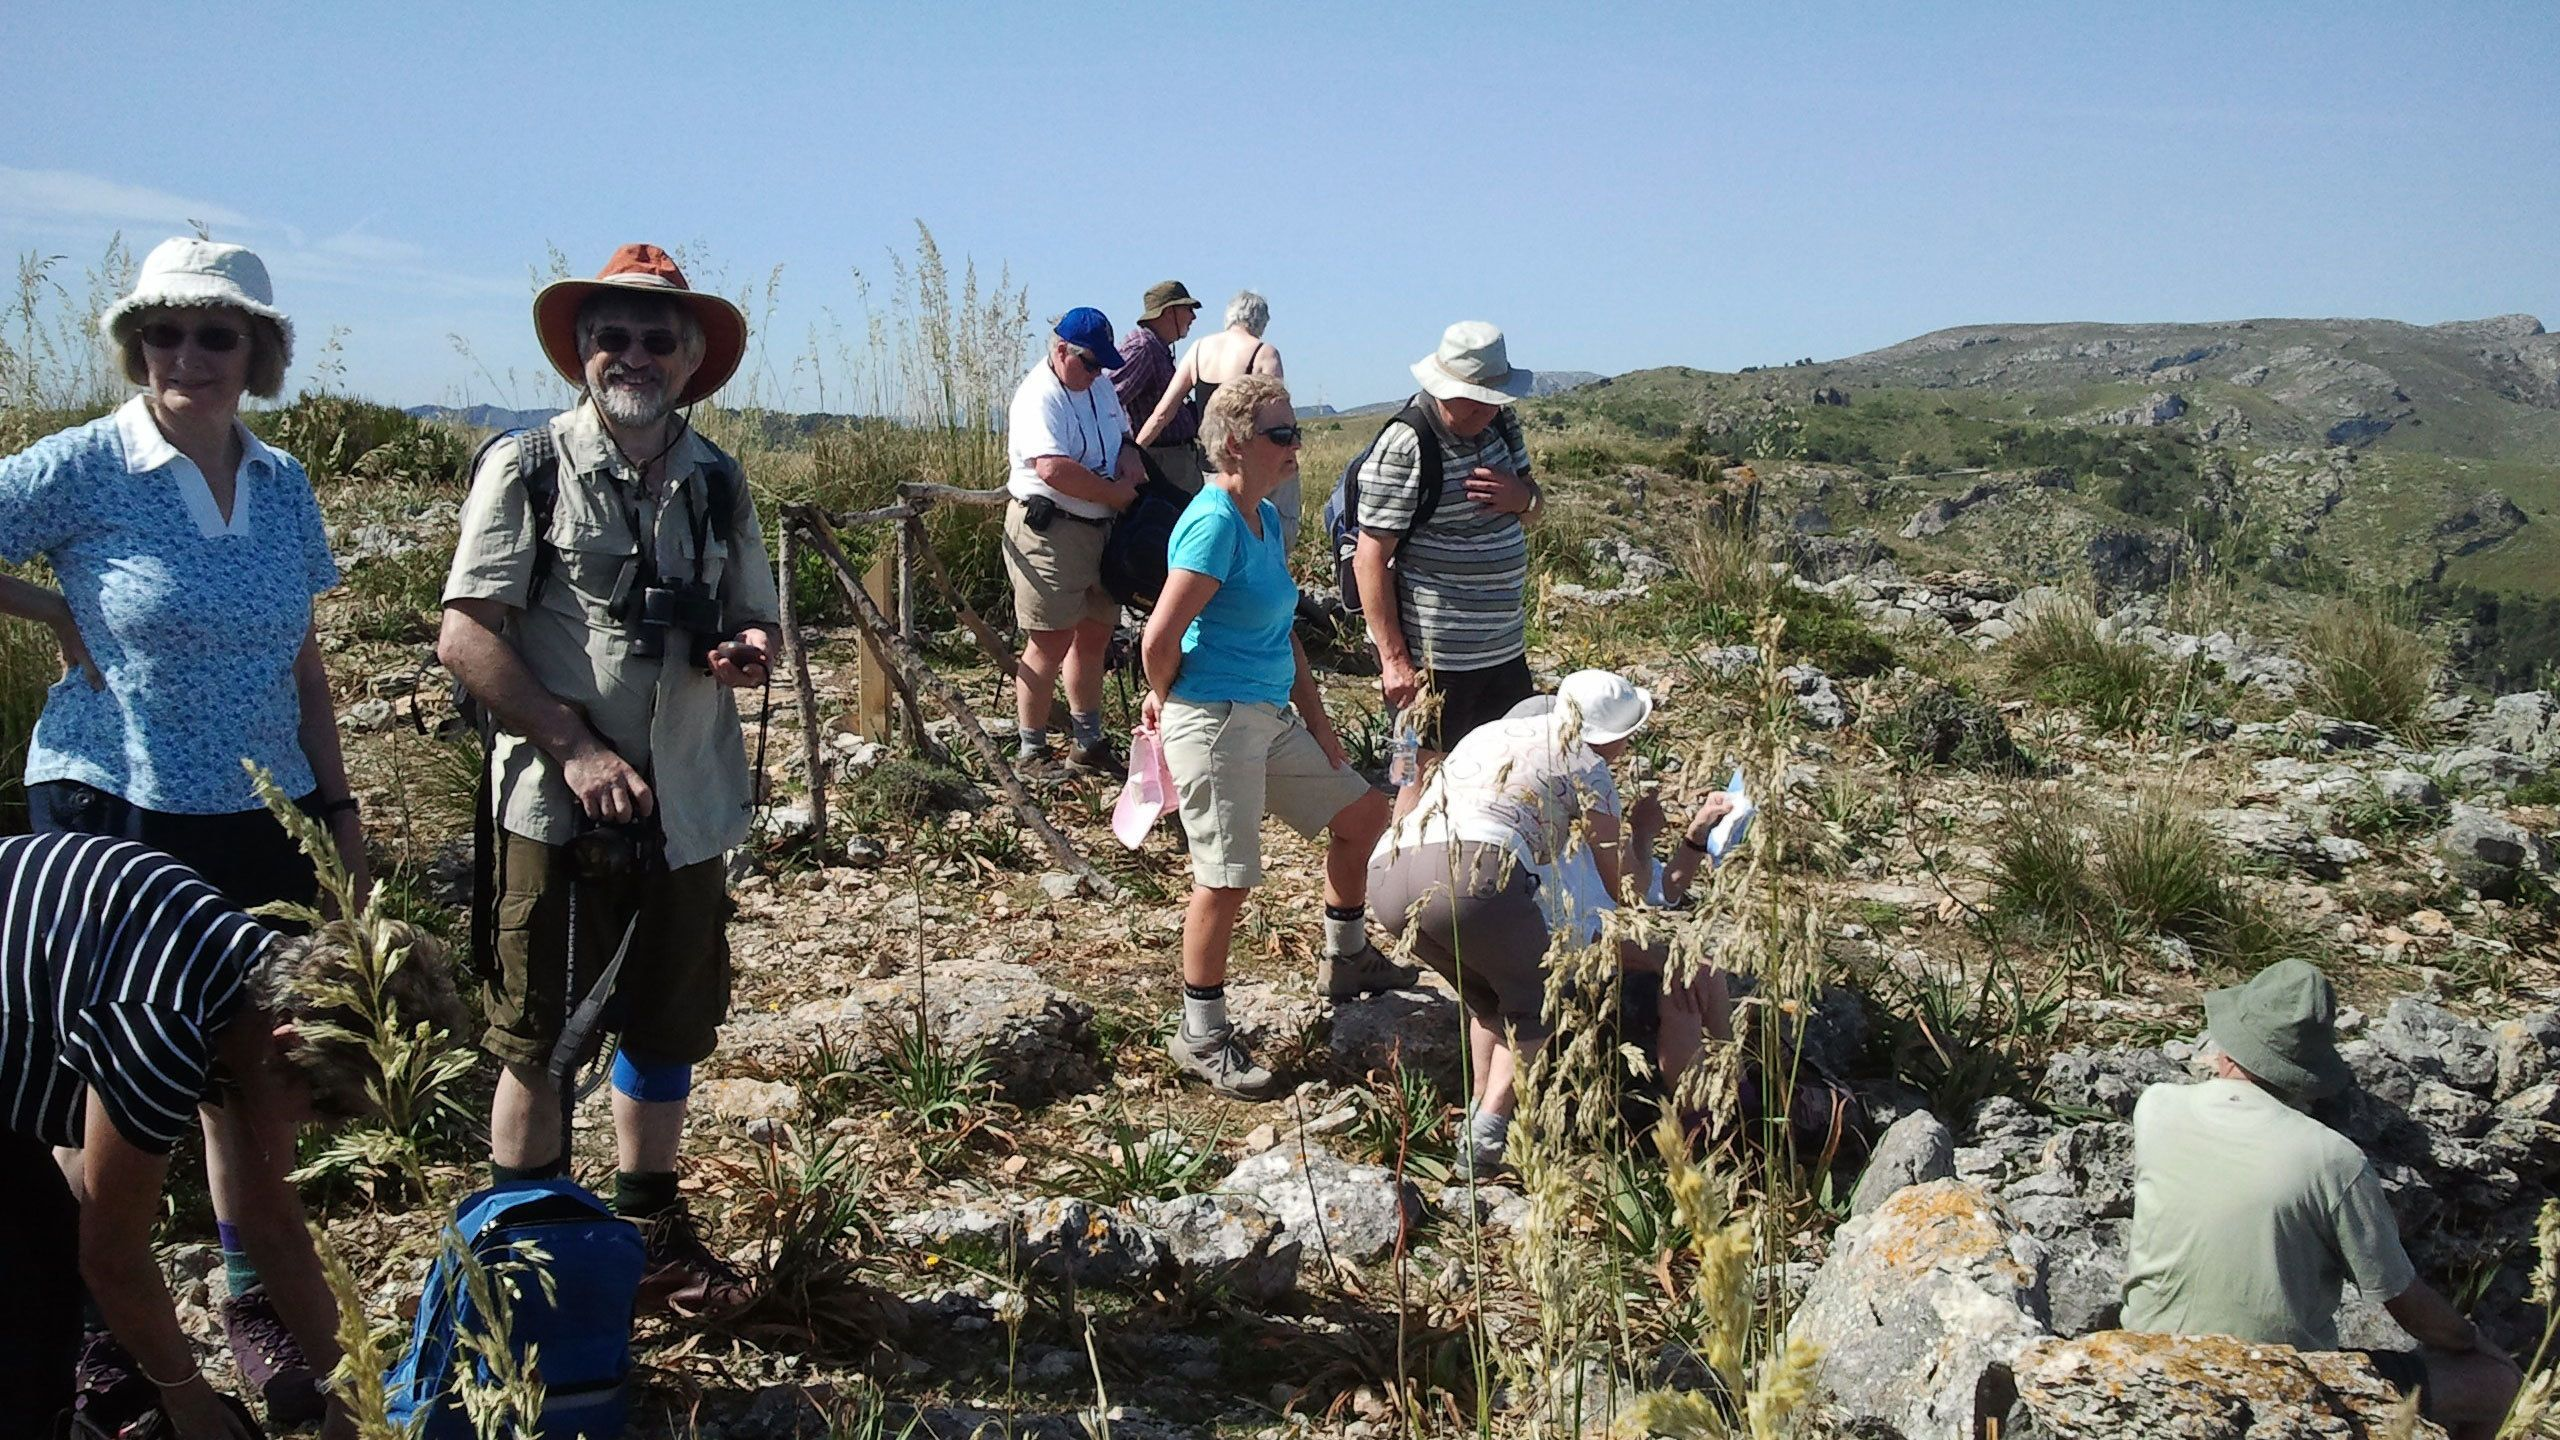 Hiking group at Llevant National Park on Mallorca Island